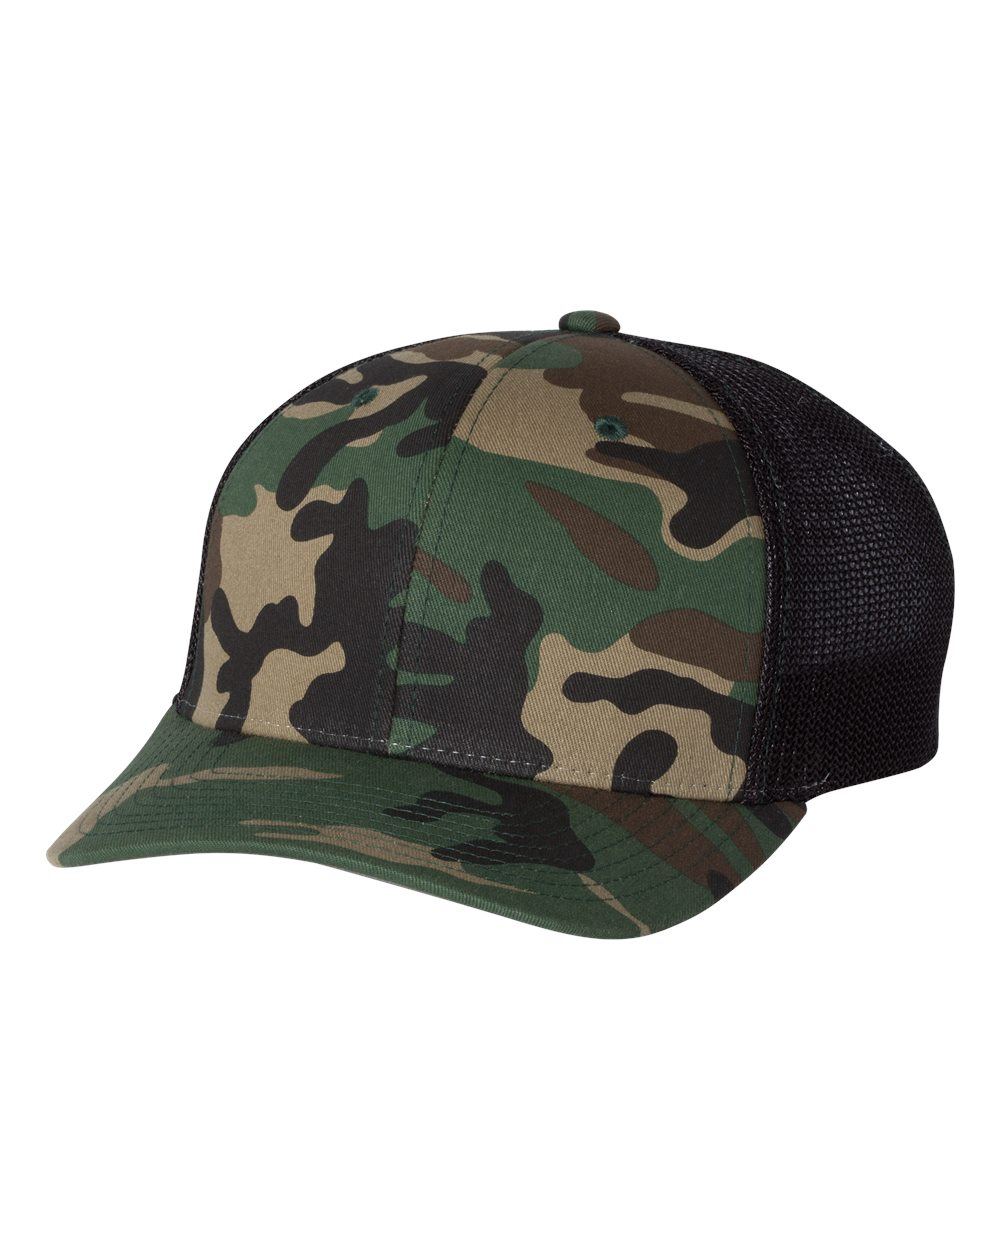 click to view Army Camo/ Black